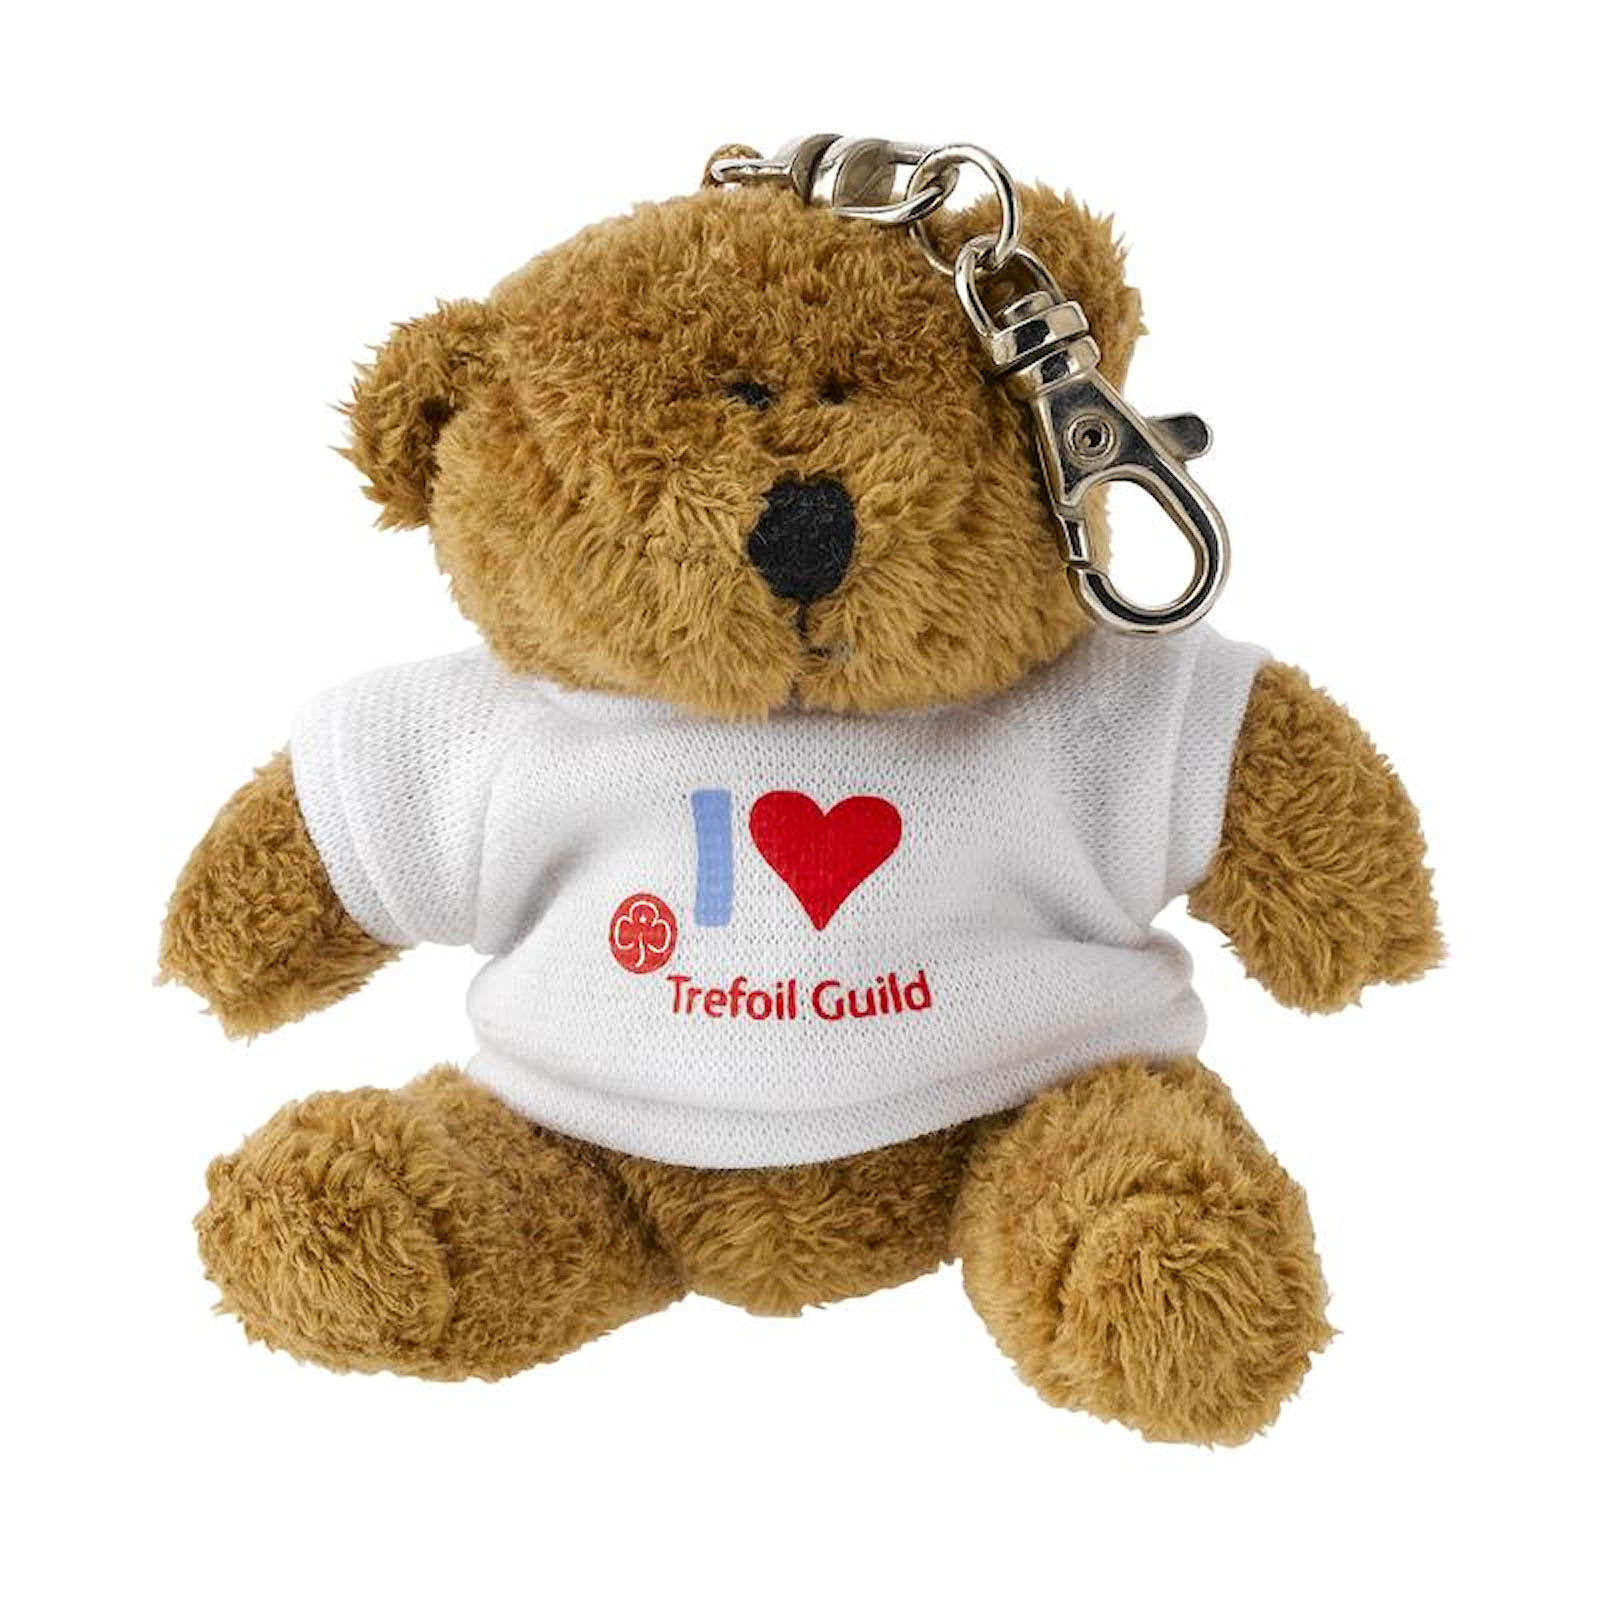 Trefoil Guild Gifts and Fun Badges